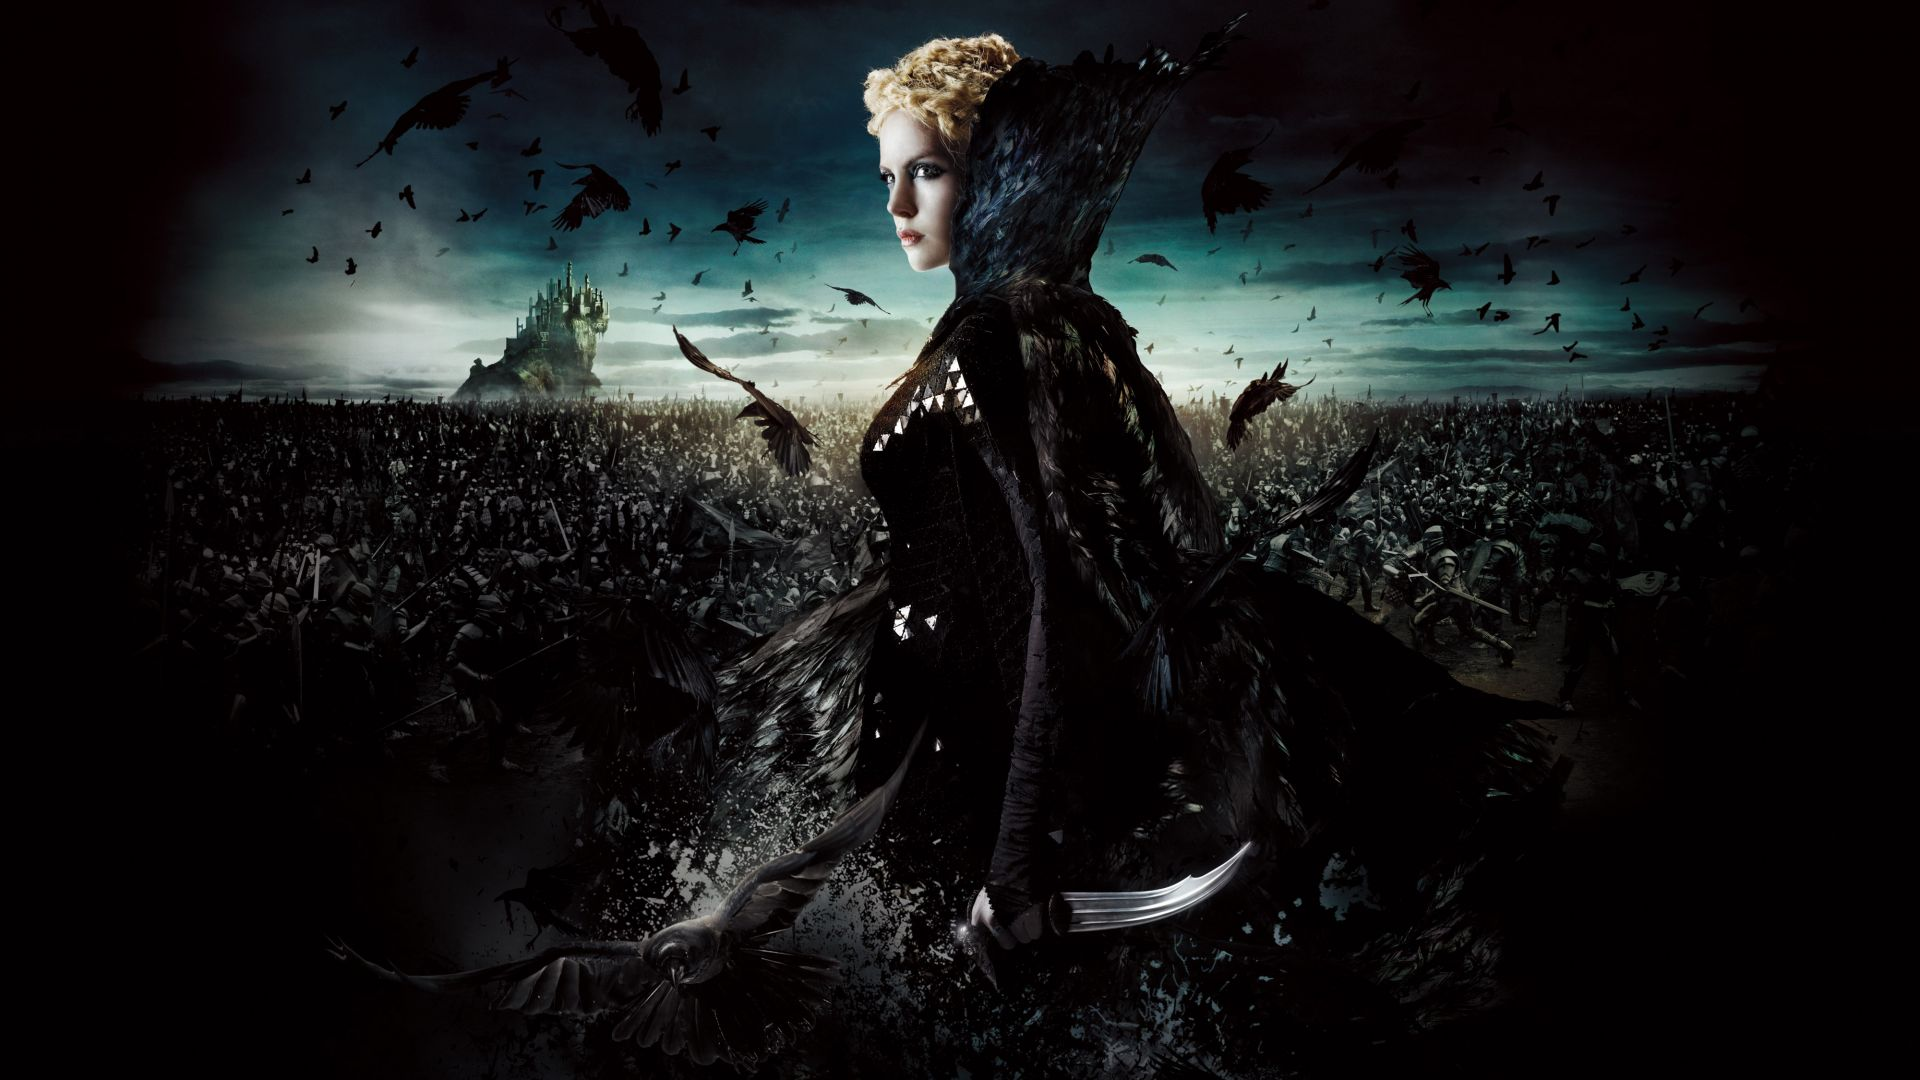 Charlize Theron, Most Popular Celebs, actress, model, Snow White and the Huntsman (horizontal)